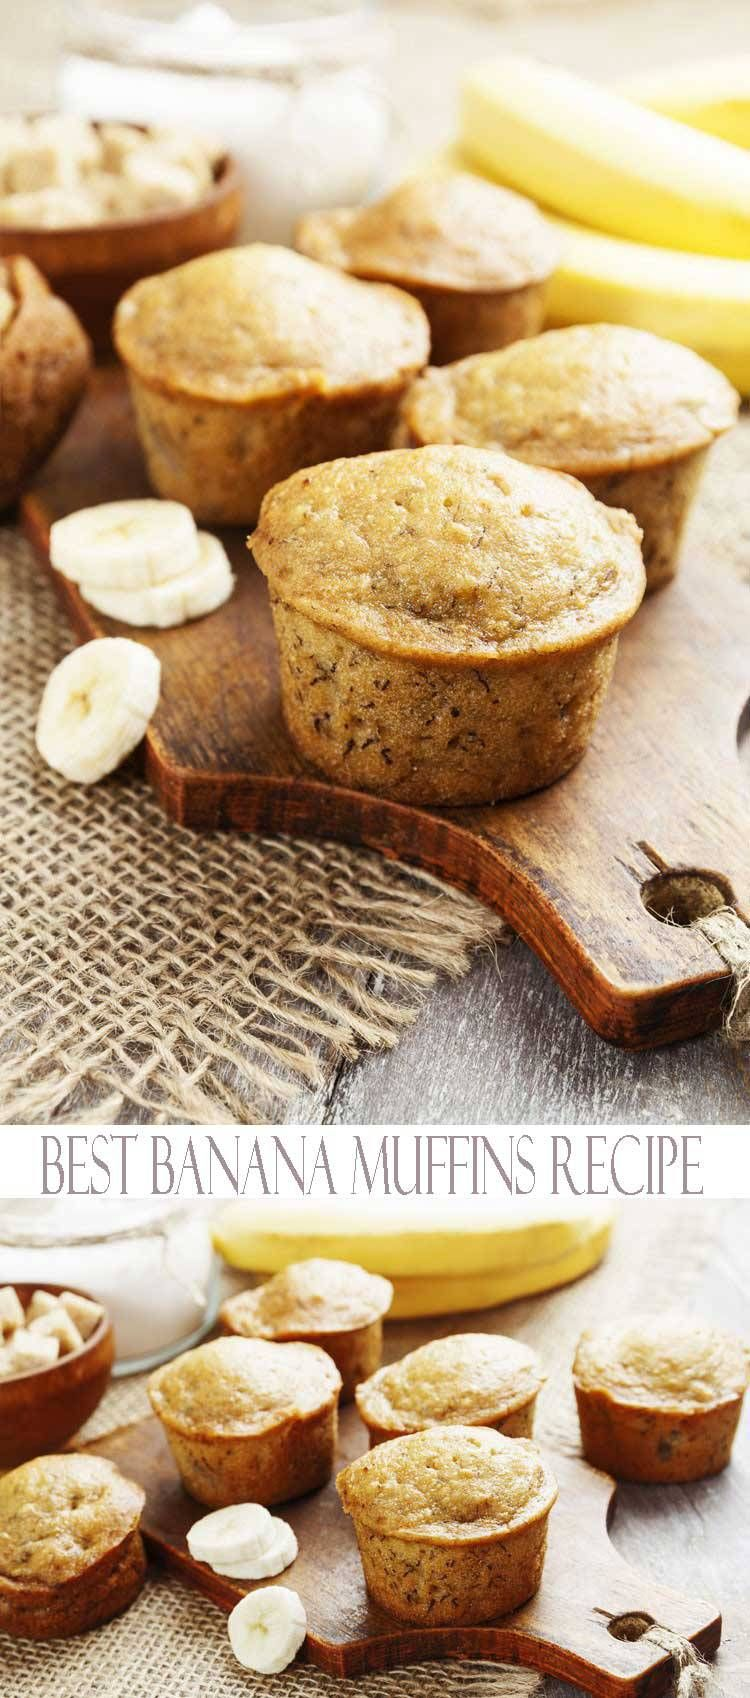 Perfect Banana Muffins- best recipe muffin recipes- All She Cooks